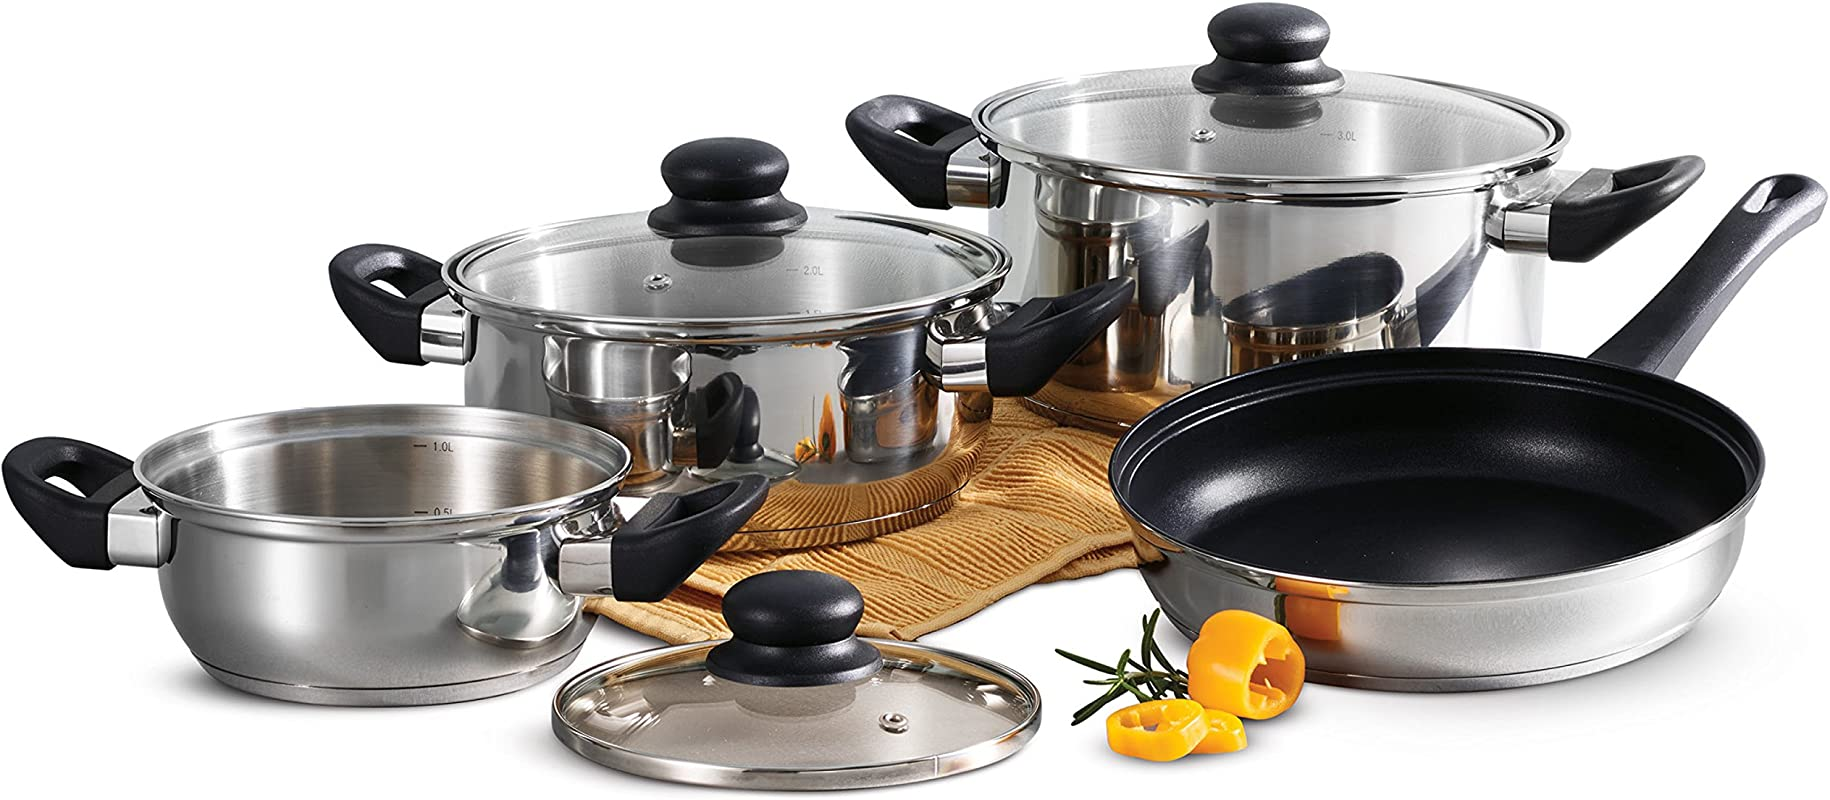 Tramontina Primaware 80117 585DS Stainless Steel Induction Ready Tri Ply Base 7 Piece Cookware Set